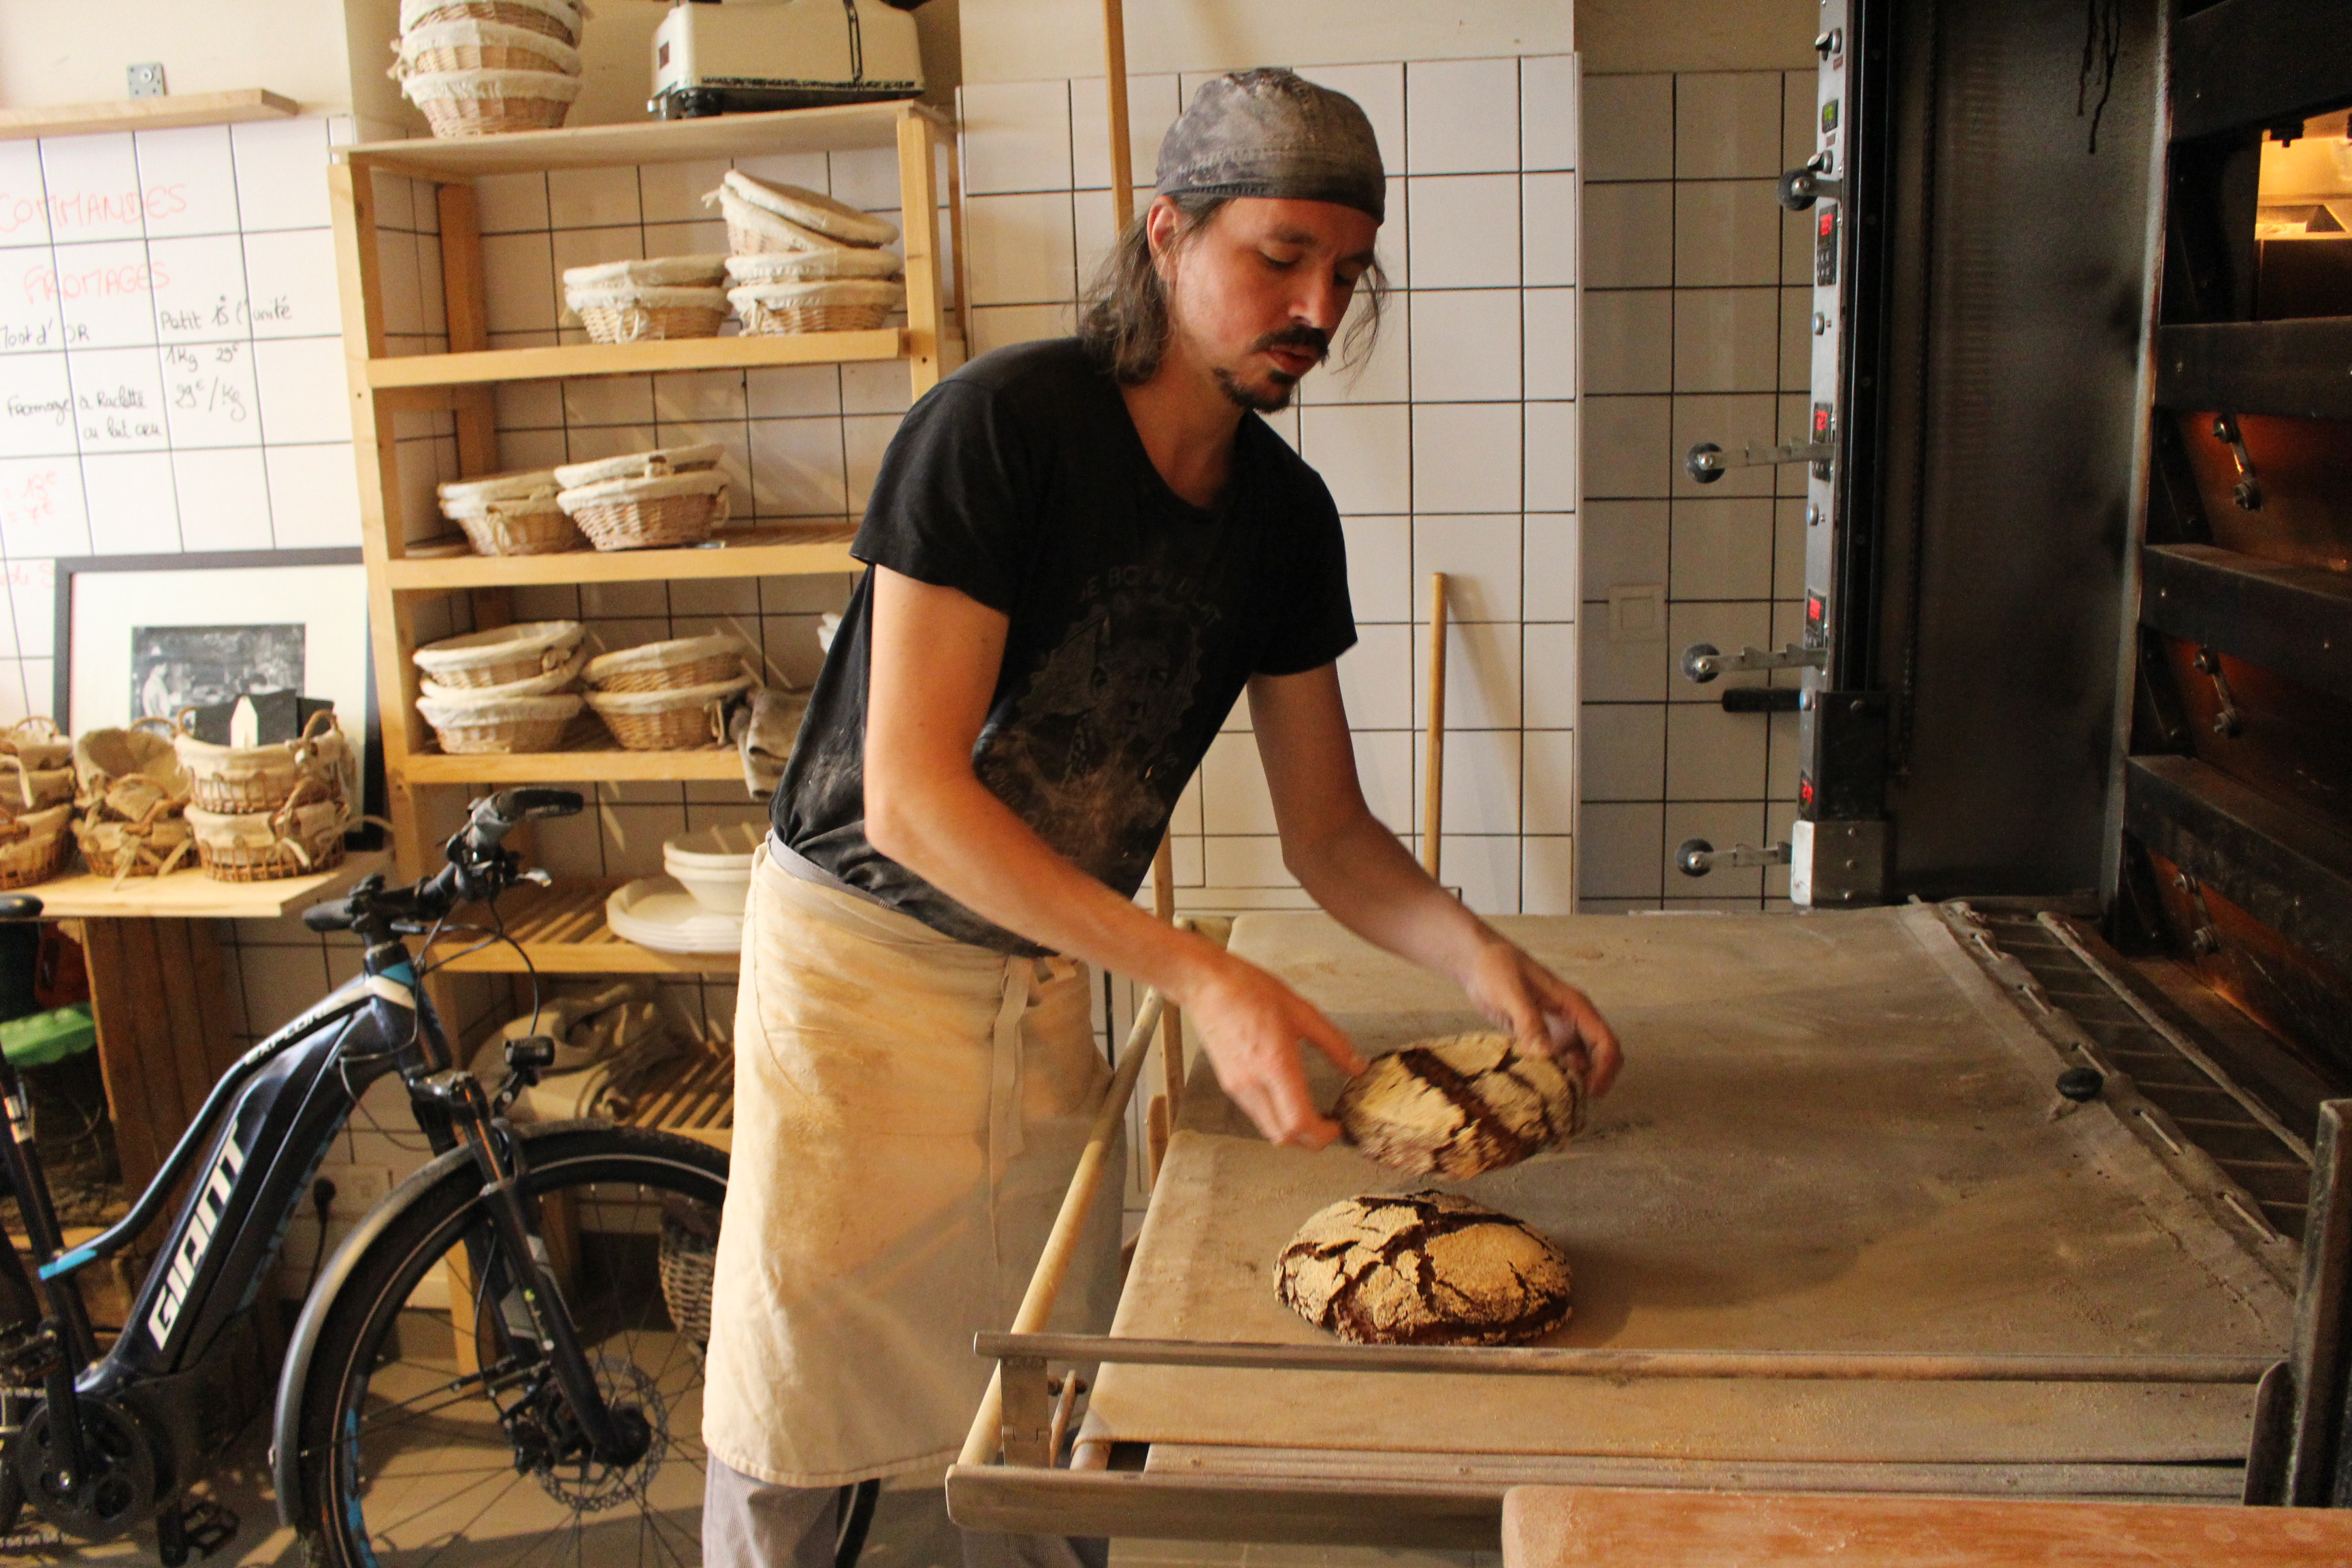 'Peasant Baker' Movement Aims to Revive France's Traditional Bread Culture